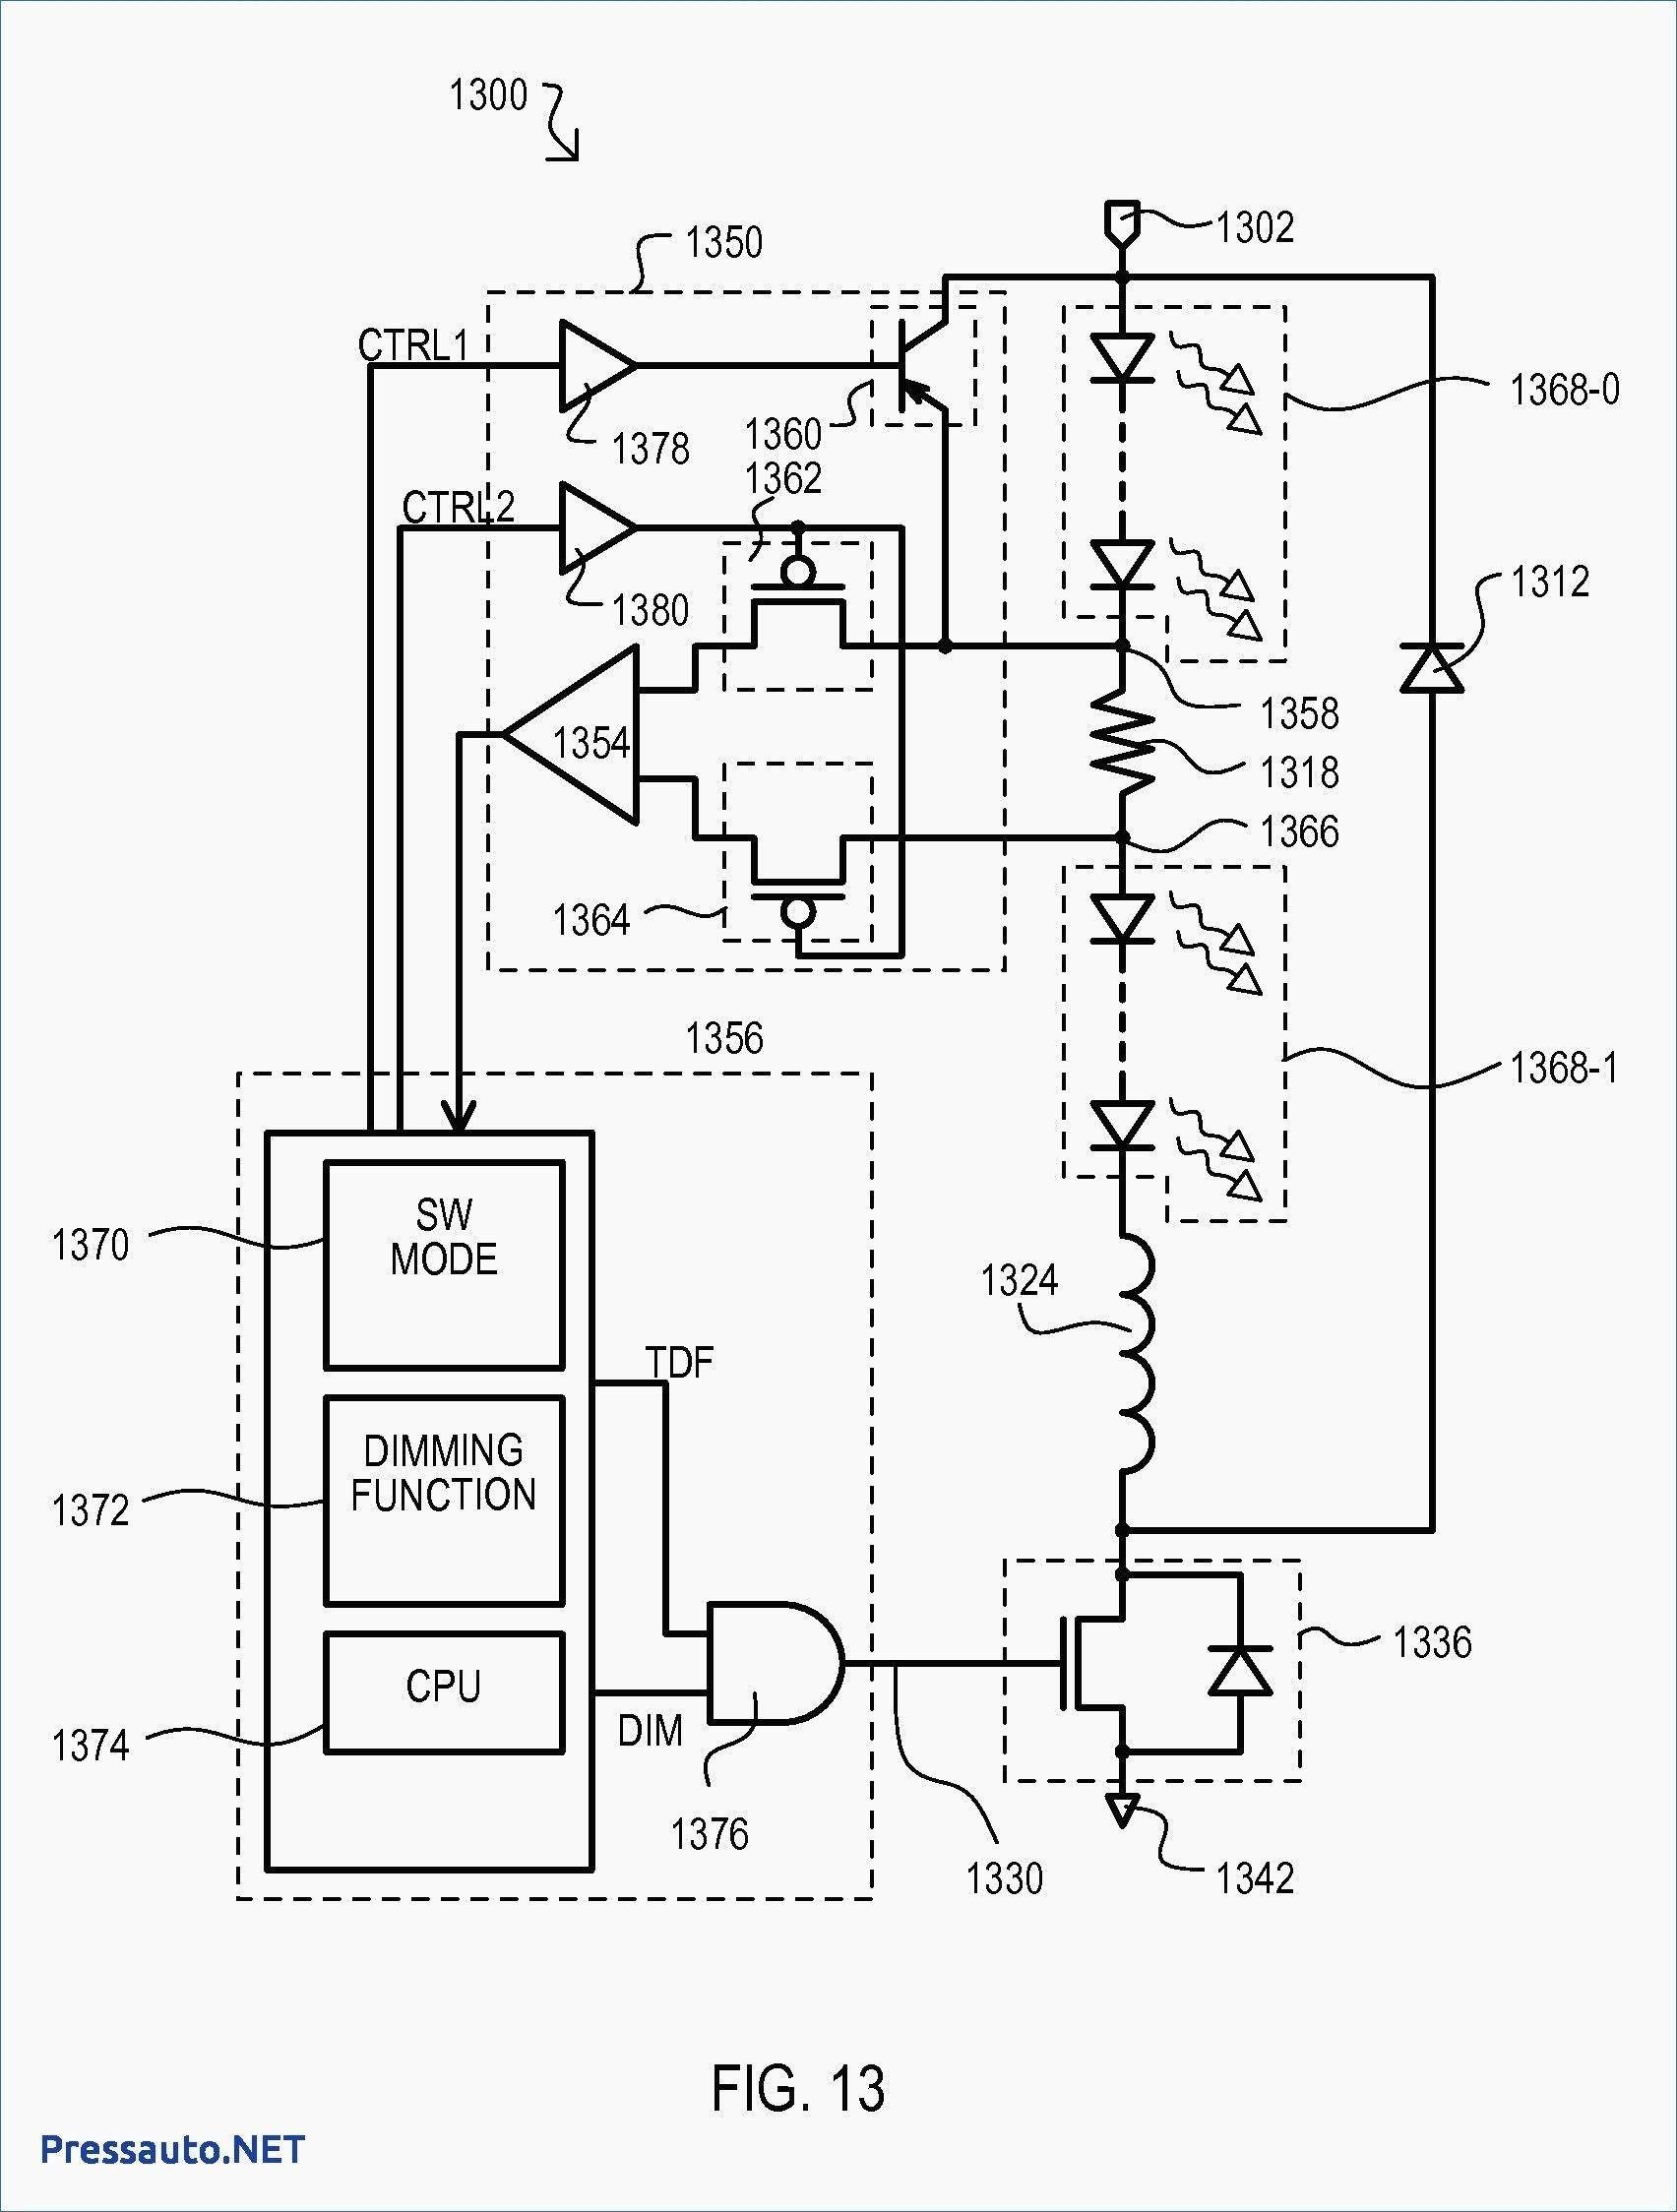 medium resolution of unique house electrical wiring diagram south africa diagram diagramsample diagramtemplate wiringdiagram